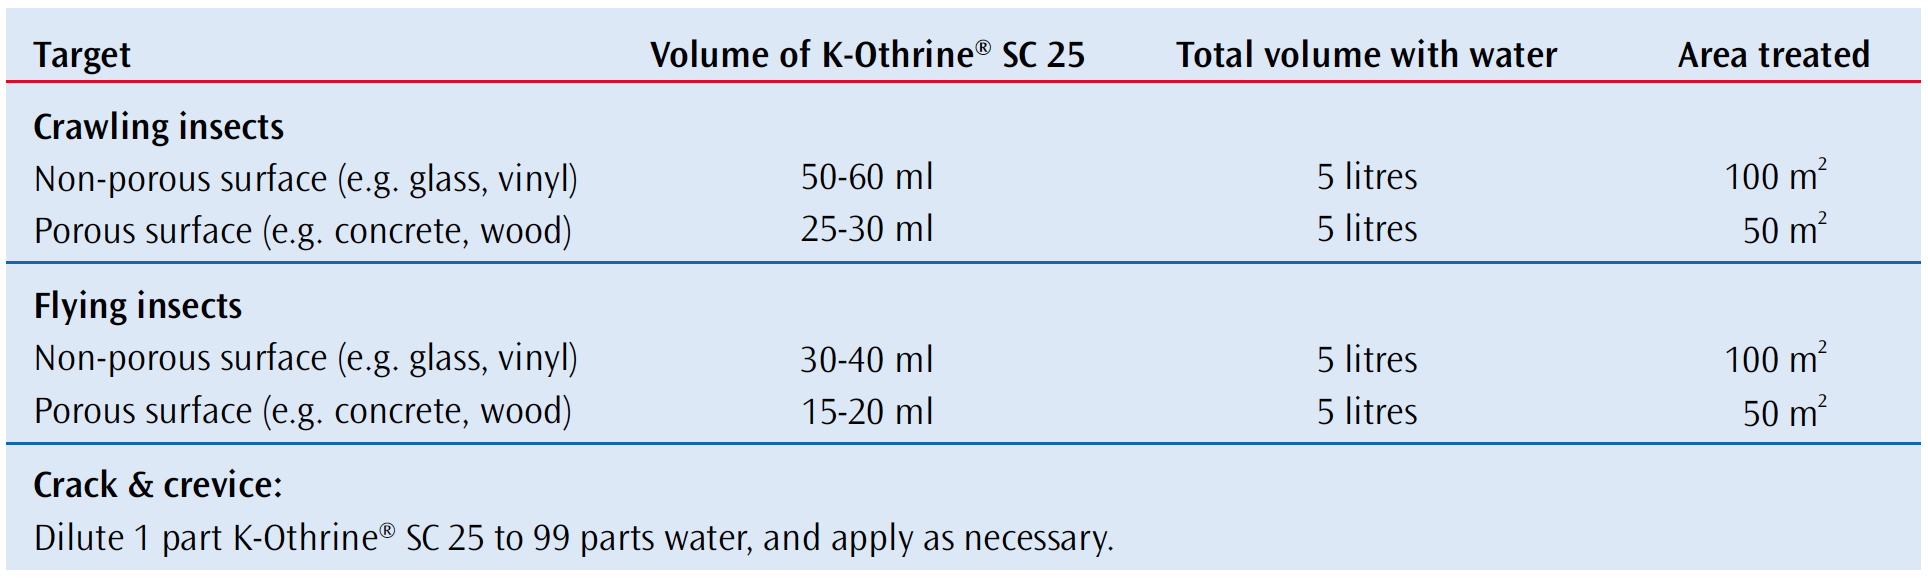 recommended application rates for K-othrine SC 25